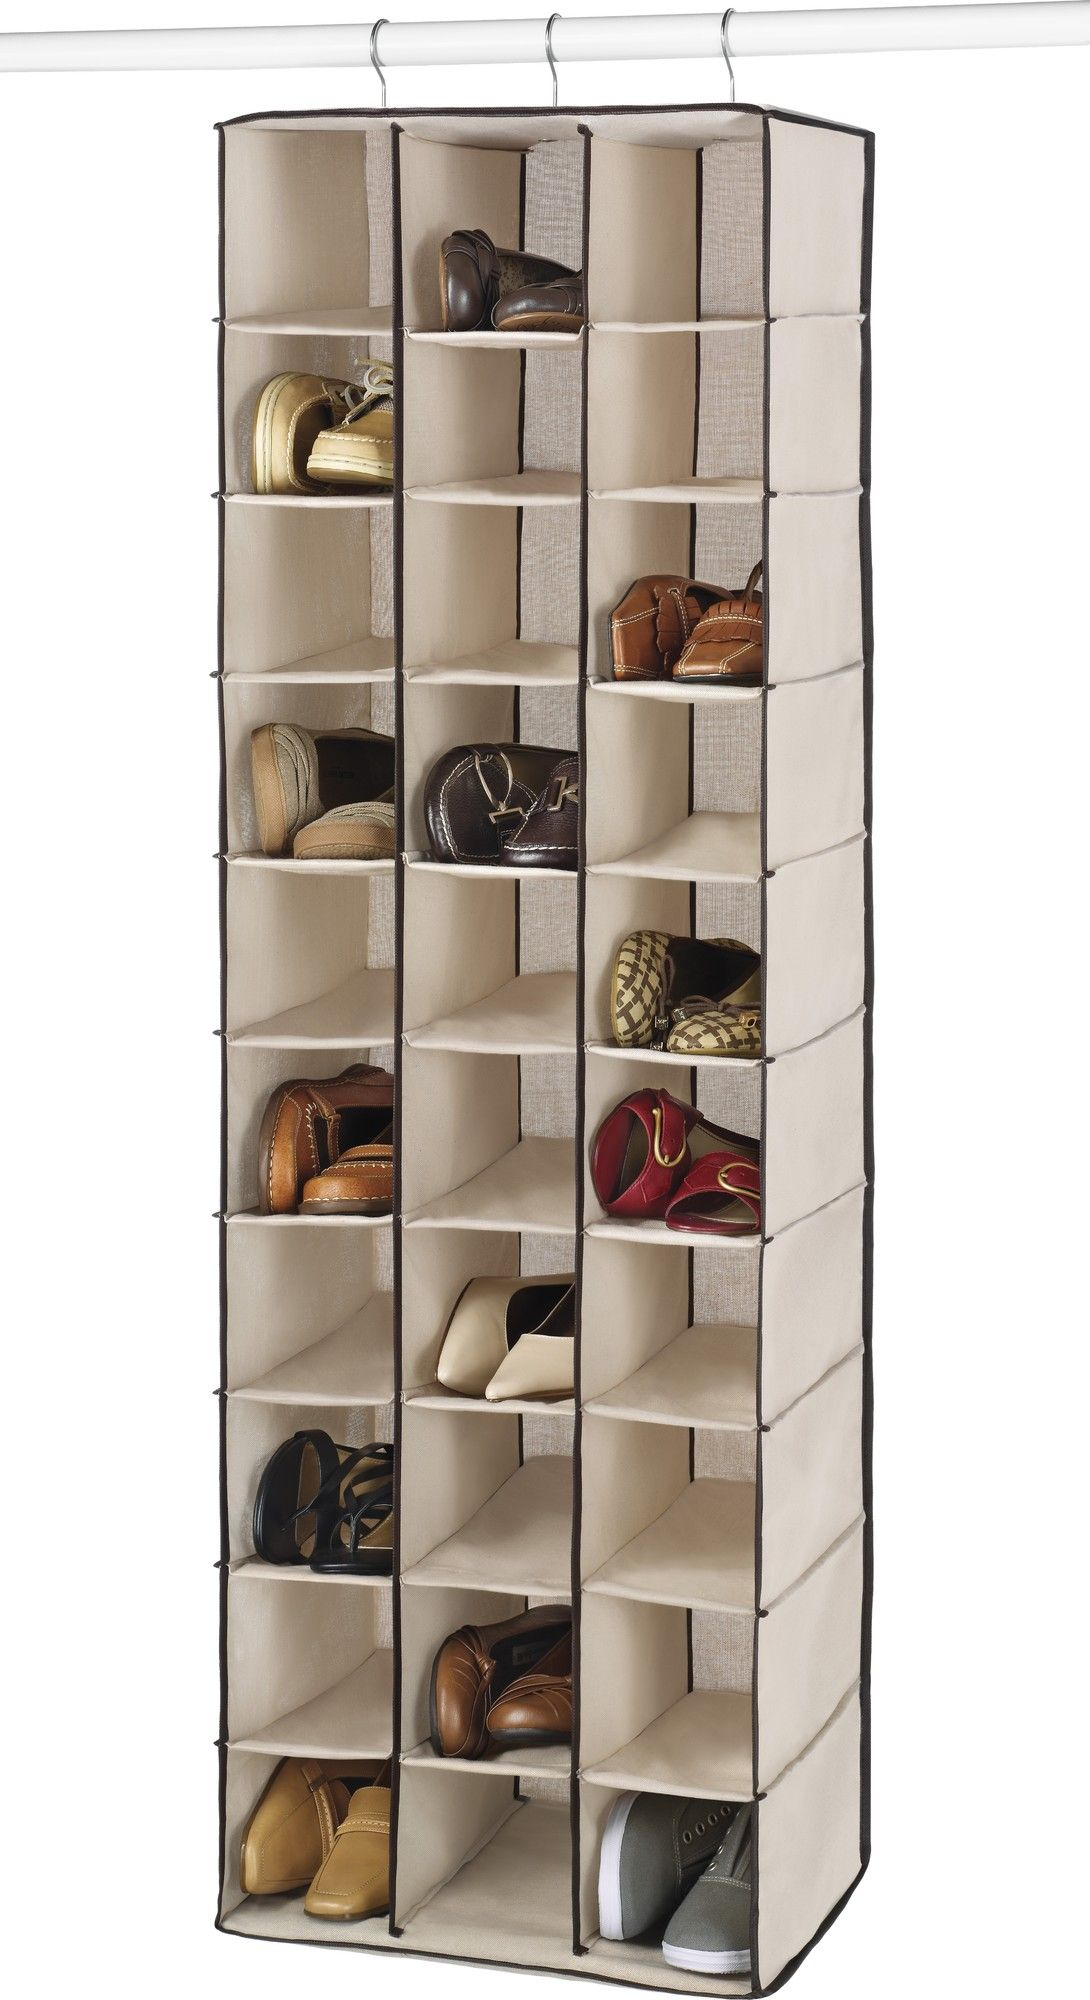 Shoe Racks And Organizers Mesmerizing 30 Pair Hanging Shoe Organizer  Pinterest  Hanging Shoe Organizer Decorating Inspiration